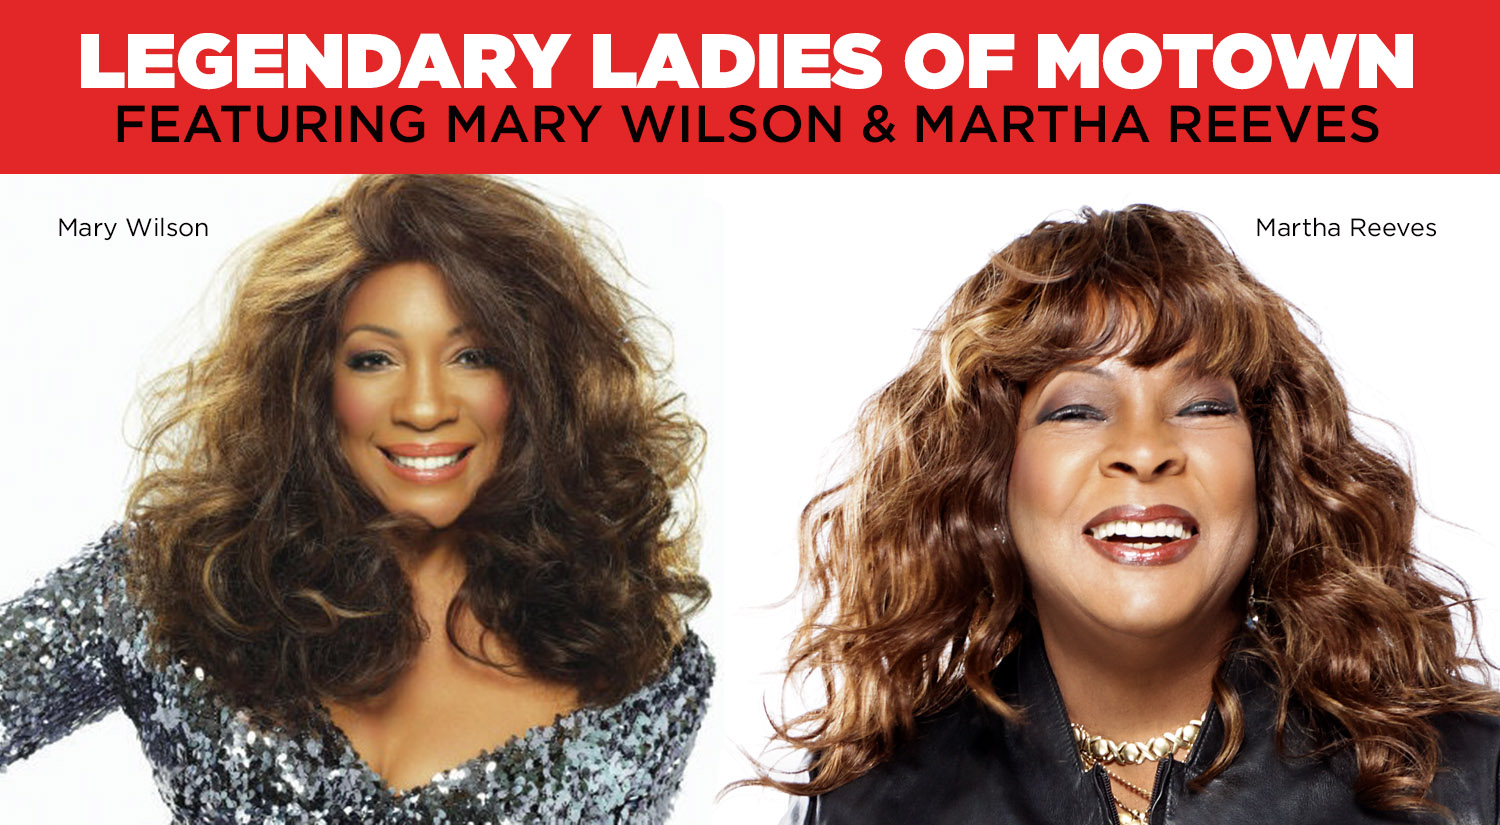 Mary Wilson and Martha Reeves